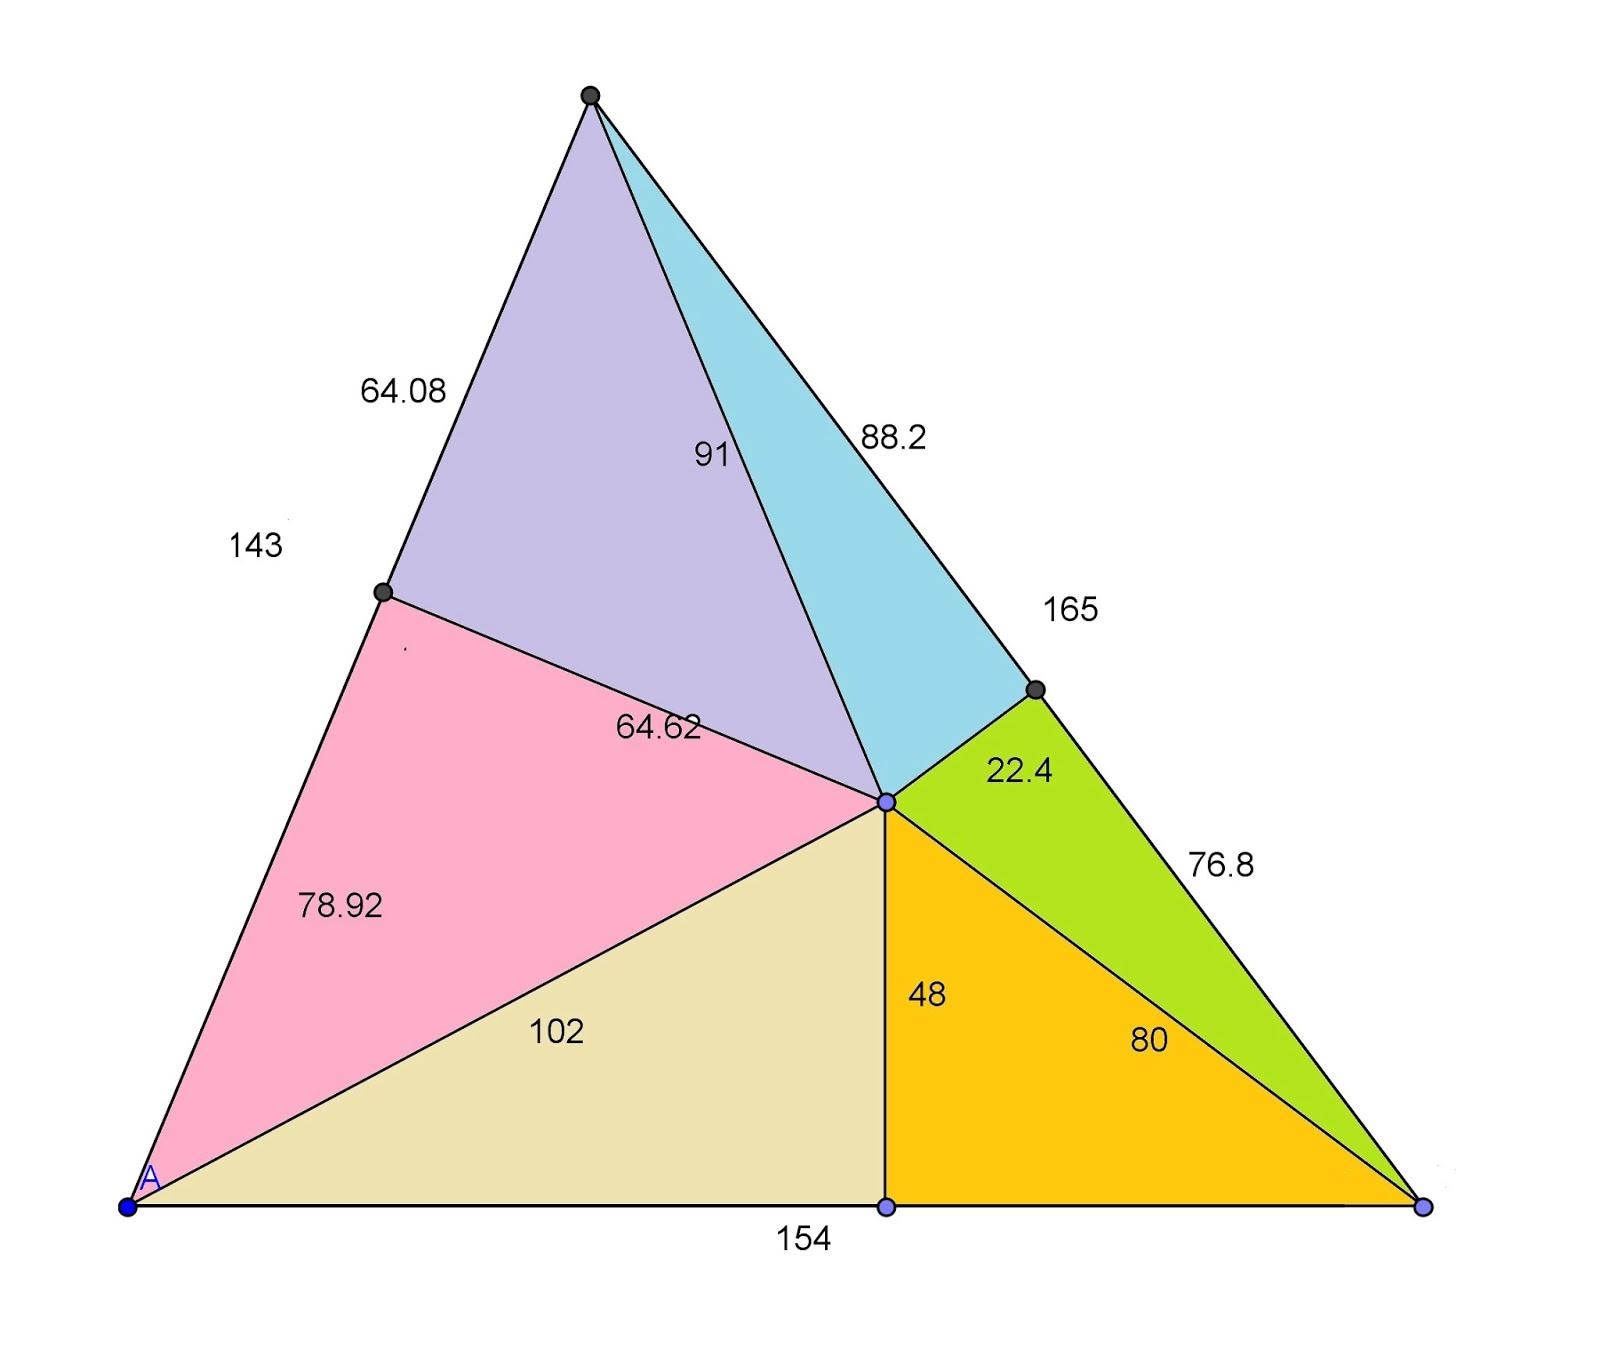 Right Angle Triangle : Happy right triangle day seek echo